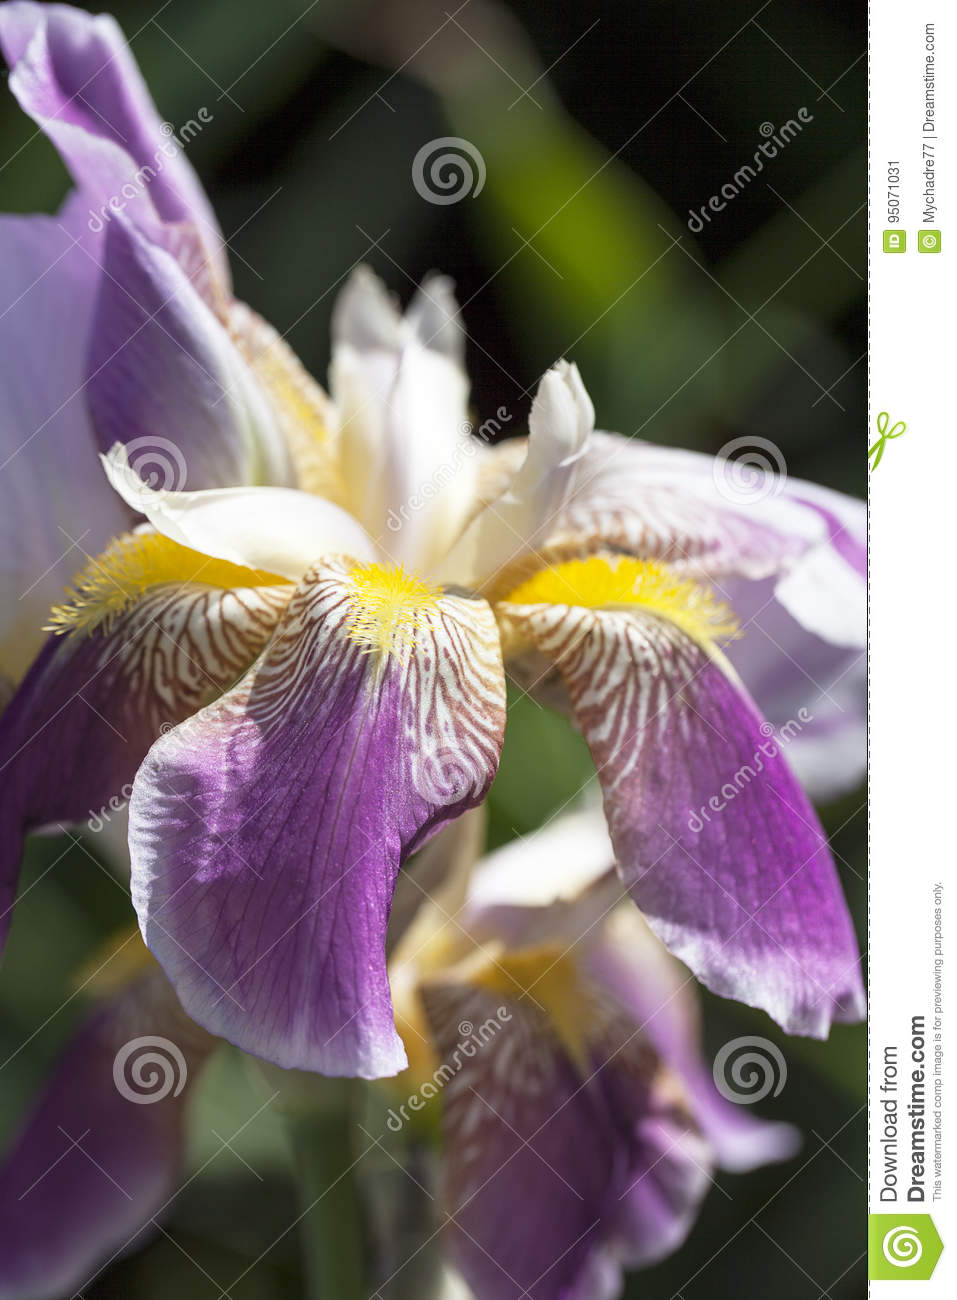 Iris, purple-yellow flowers blooming in a garden, close up.